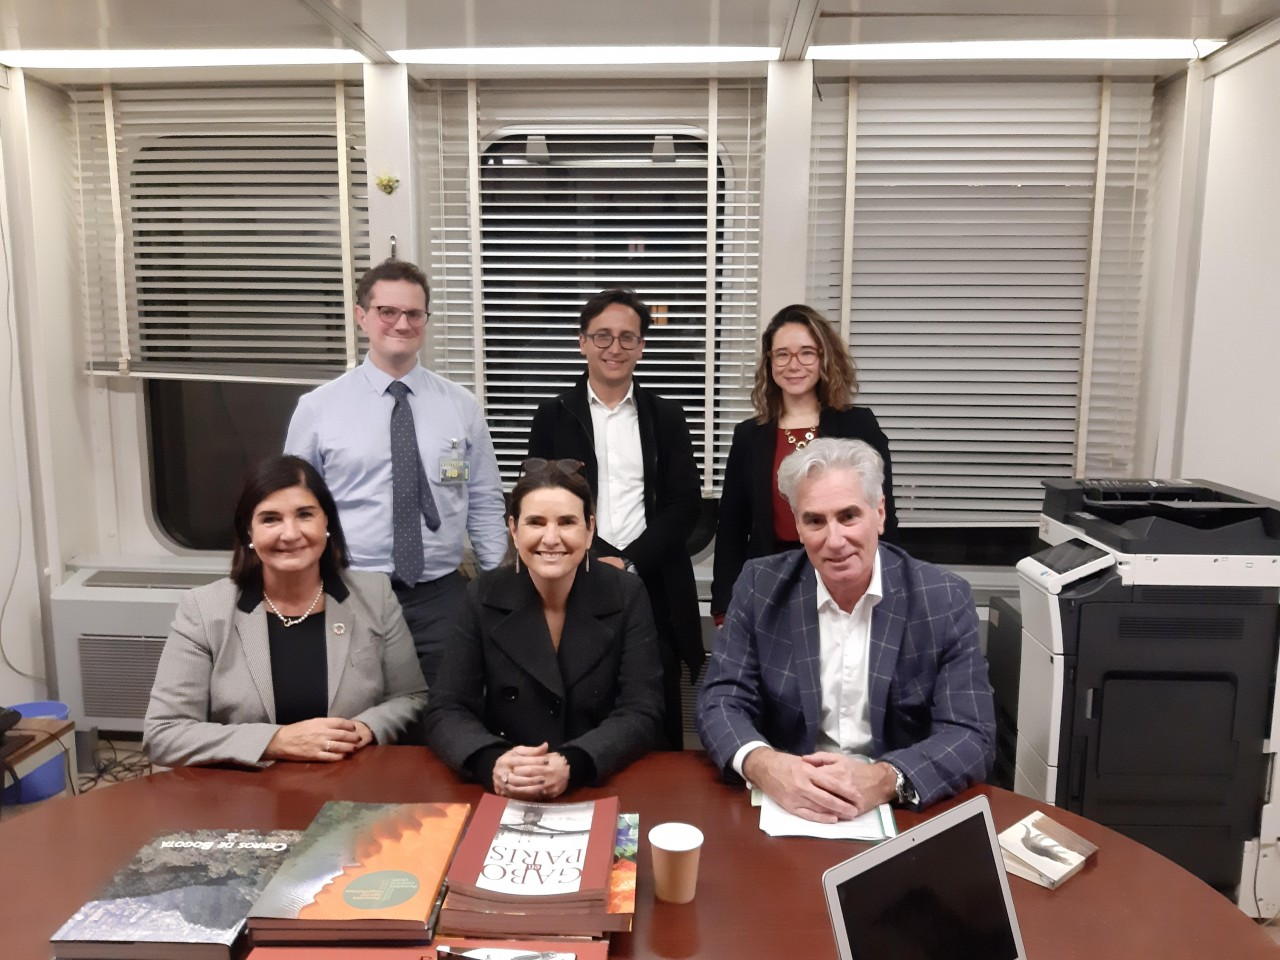 Former IFLA President Glòria Pérez-Salmerón (front left), Secretary General Gerald Leitner (front right) and Policy & Advocacy Manager Stephen Wyber (back left) with CERLALC members.